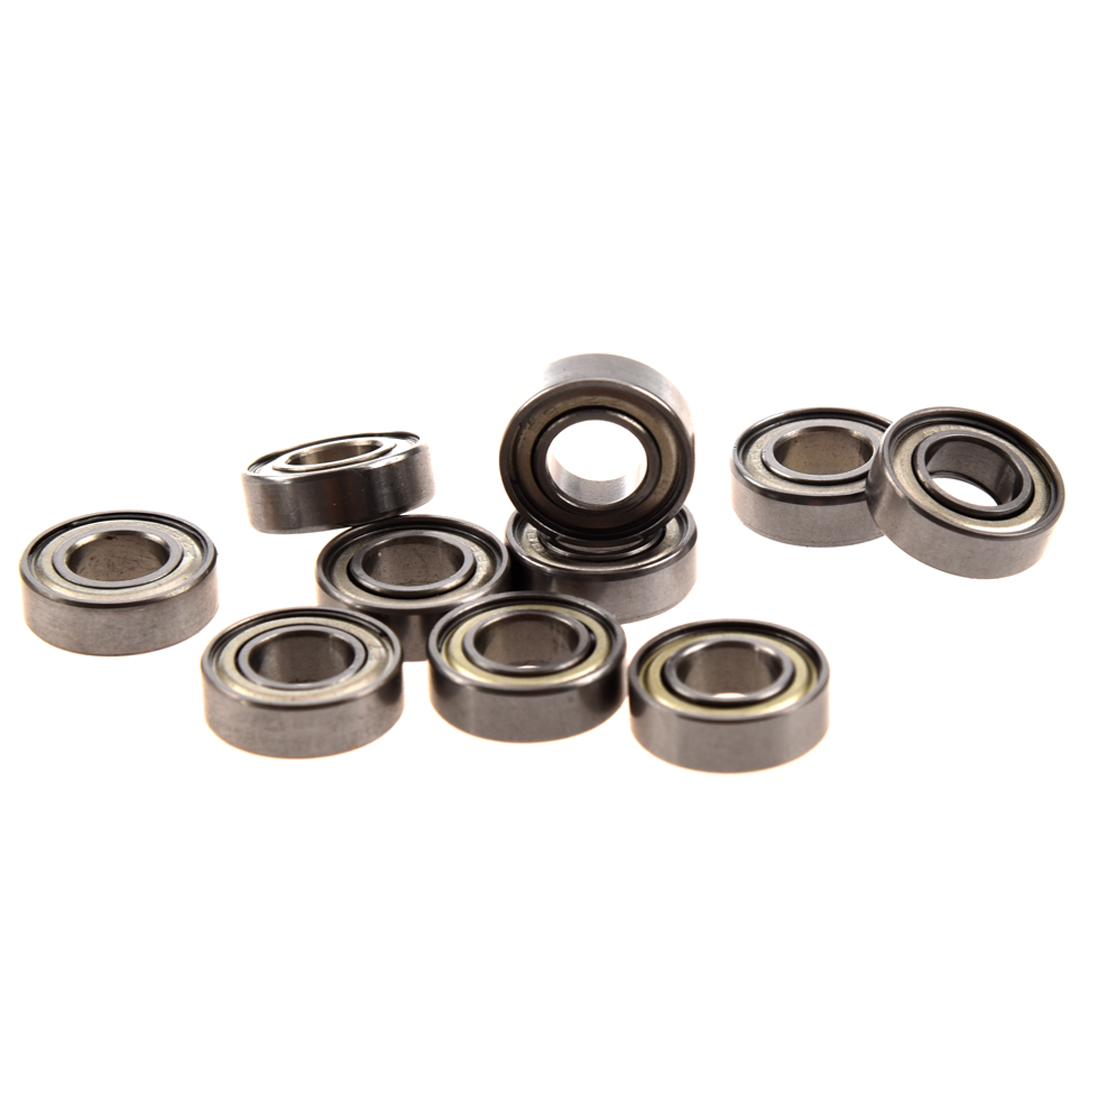 Wholesales 10 Pcs 698Z 8 x 19 x6mm Single Row Sealed Deep Groove Ball Bearings